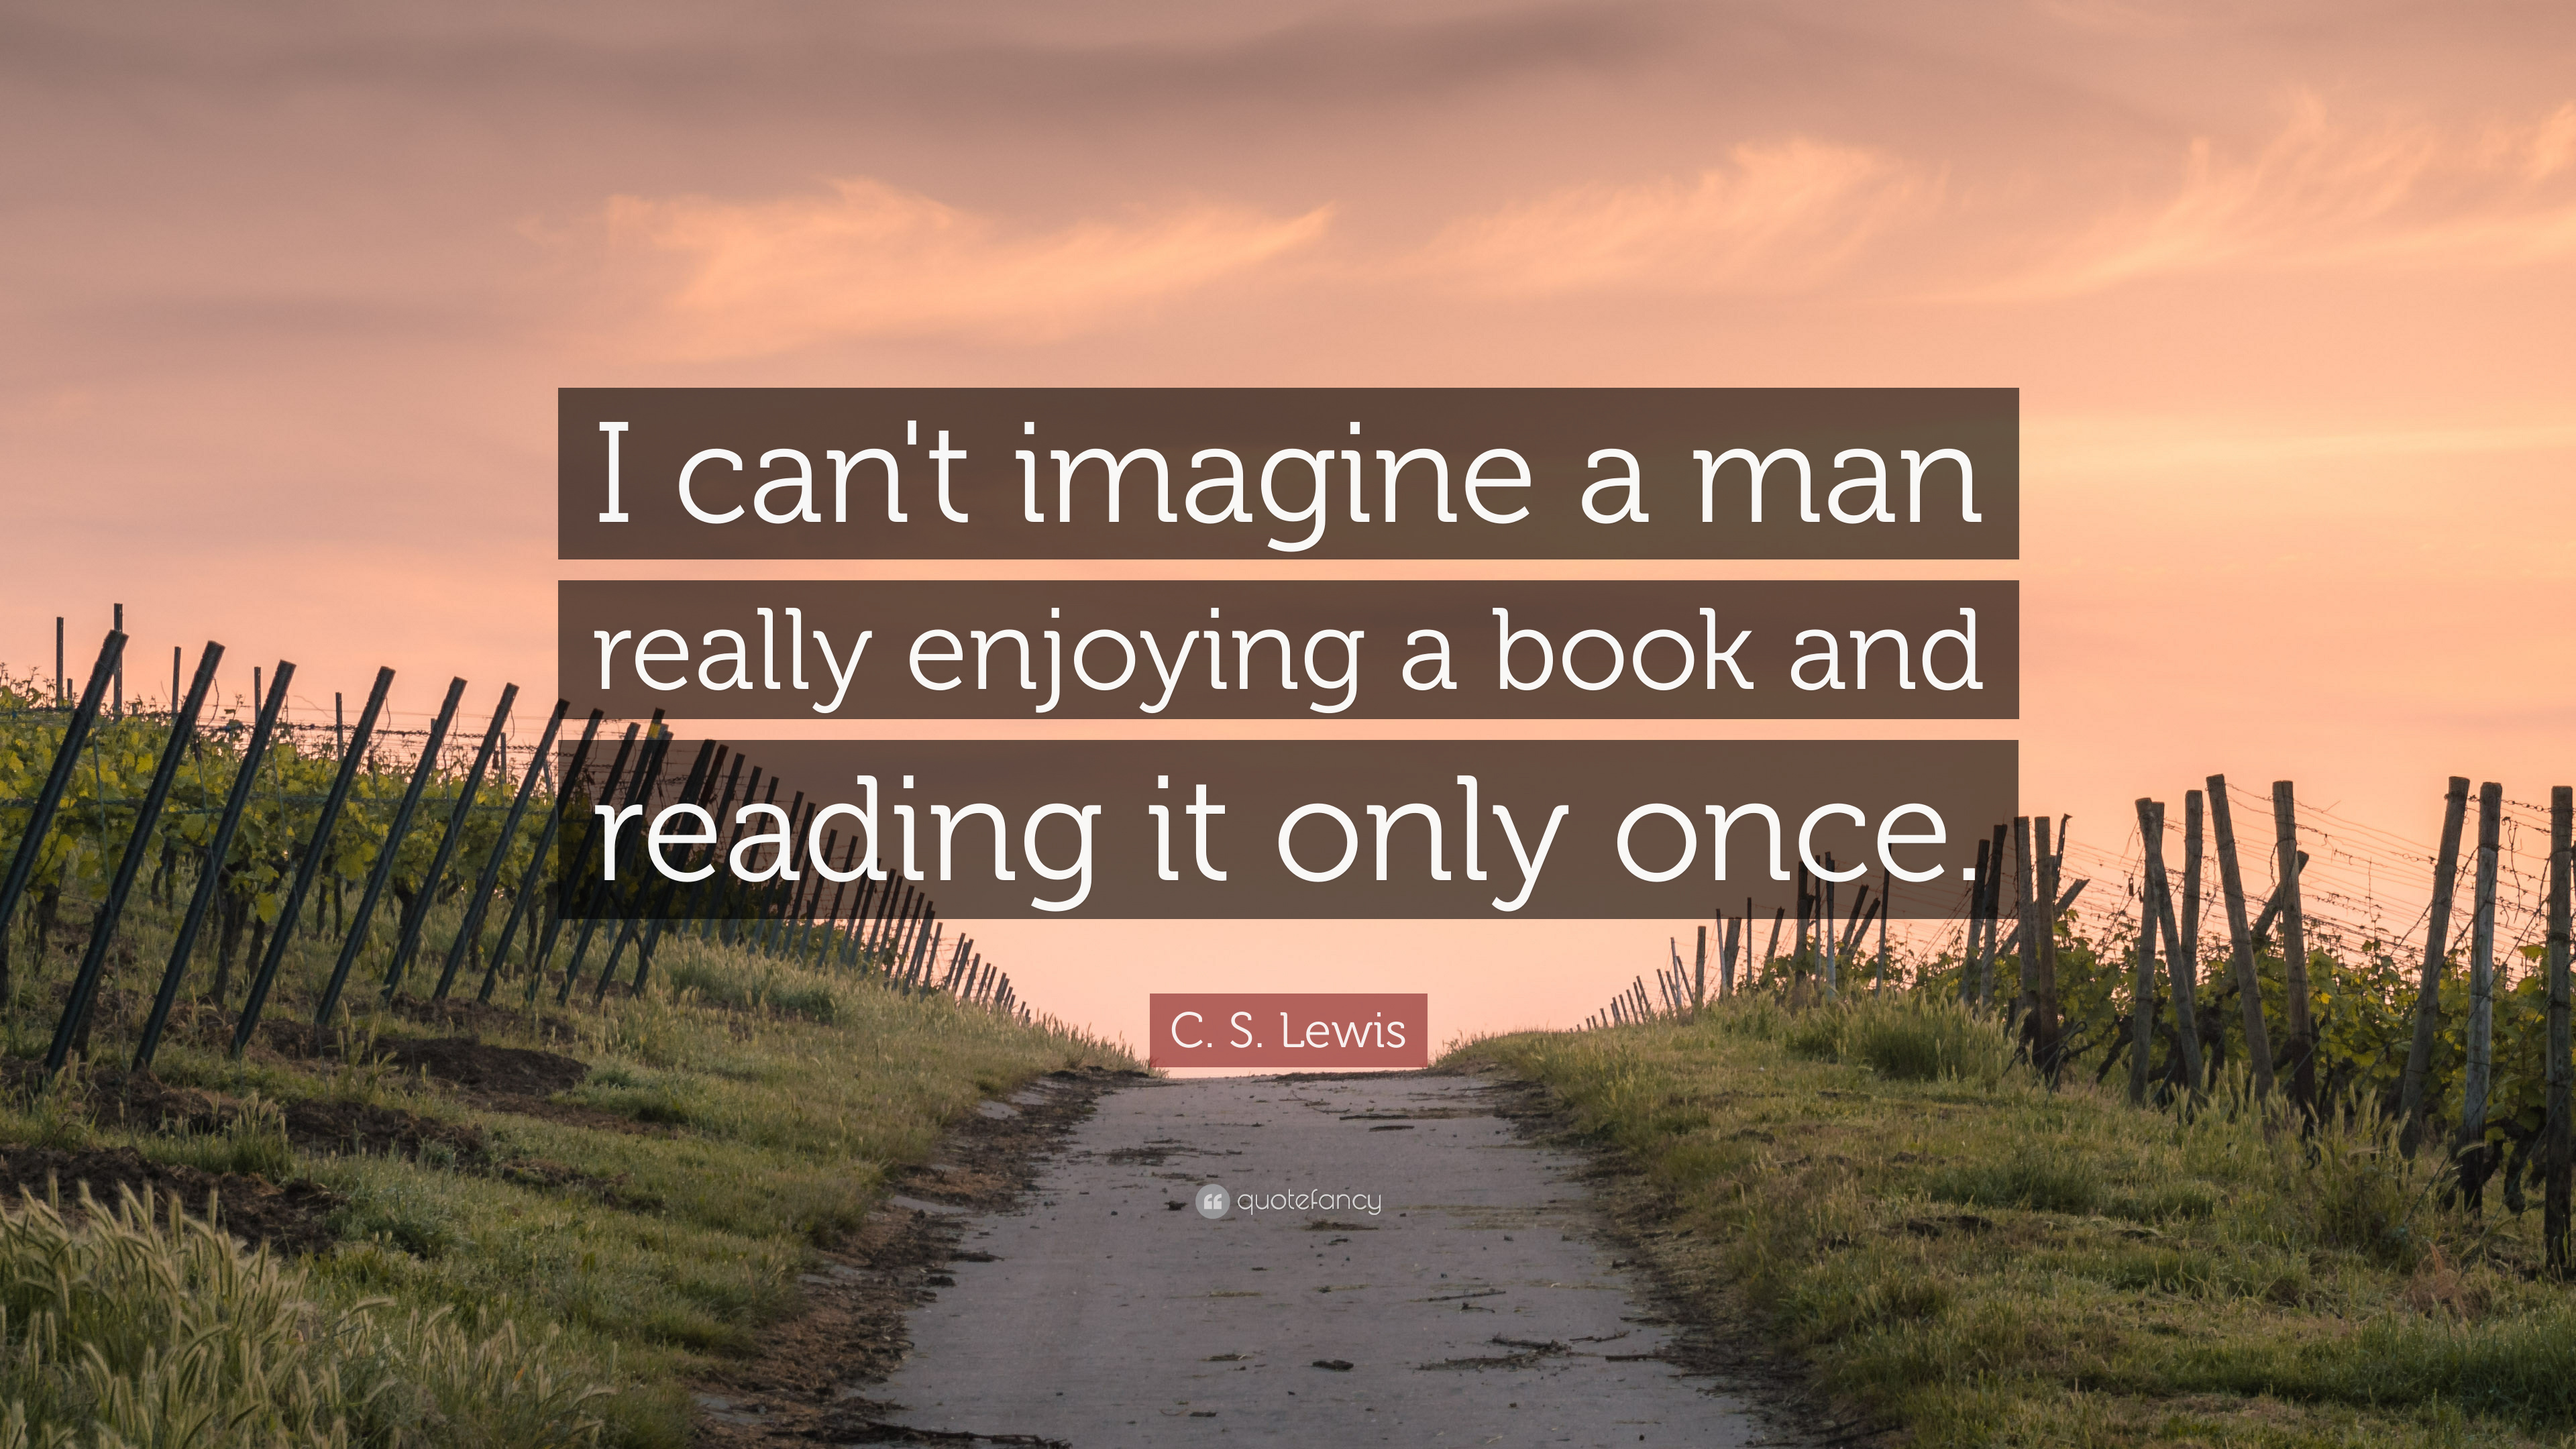 c s lewis quote i cant imagine a man really enjoying a book